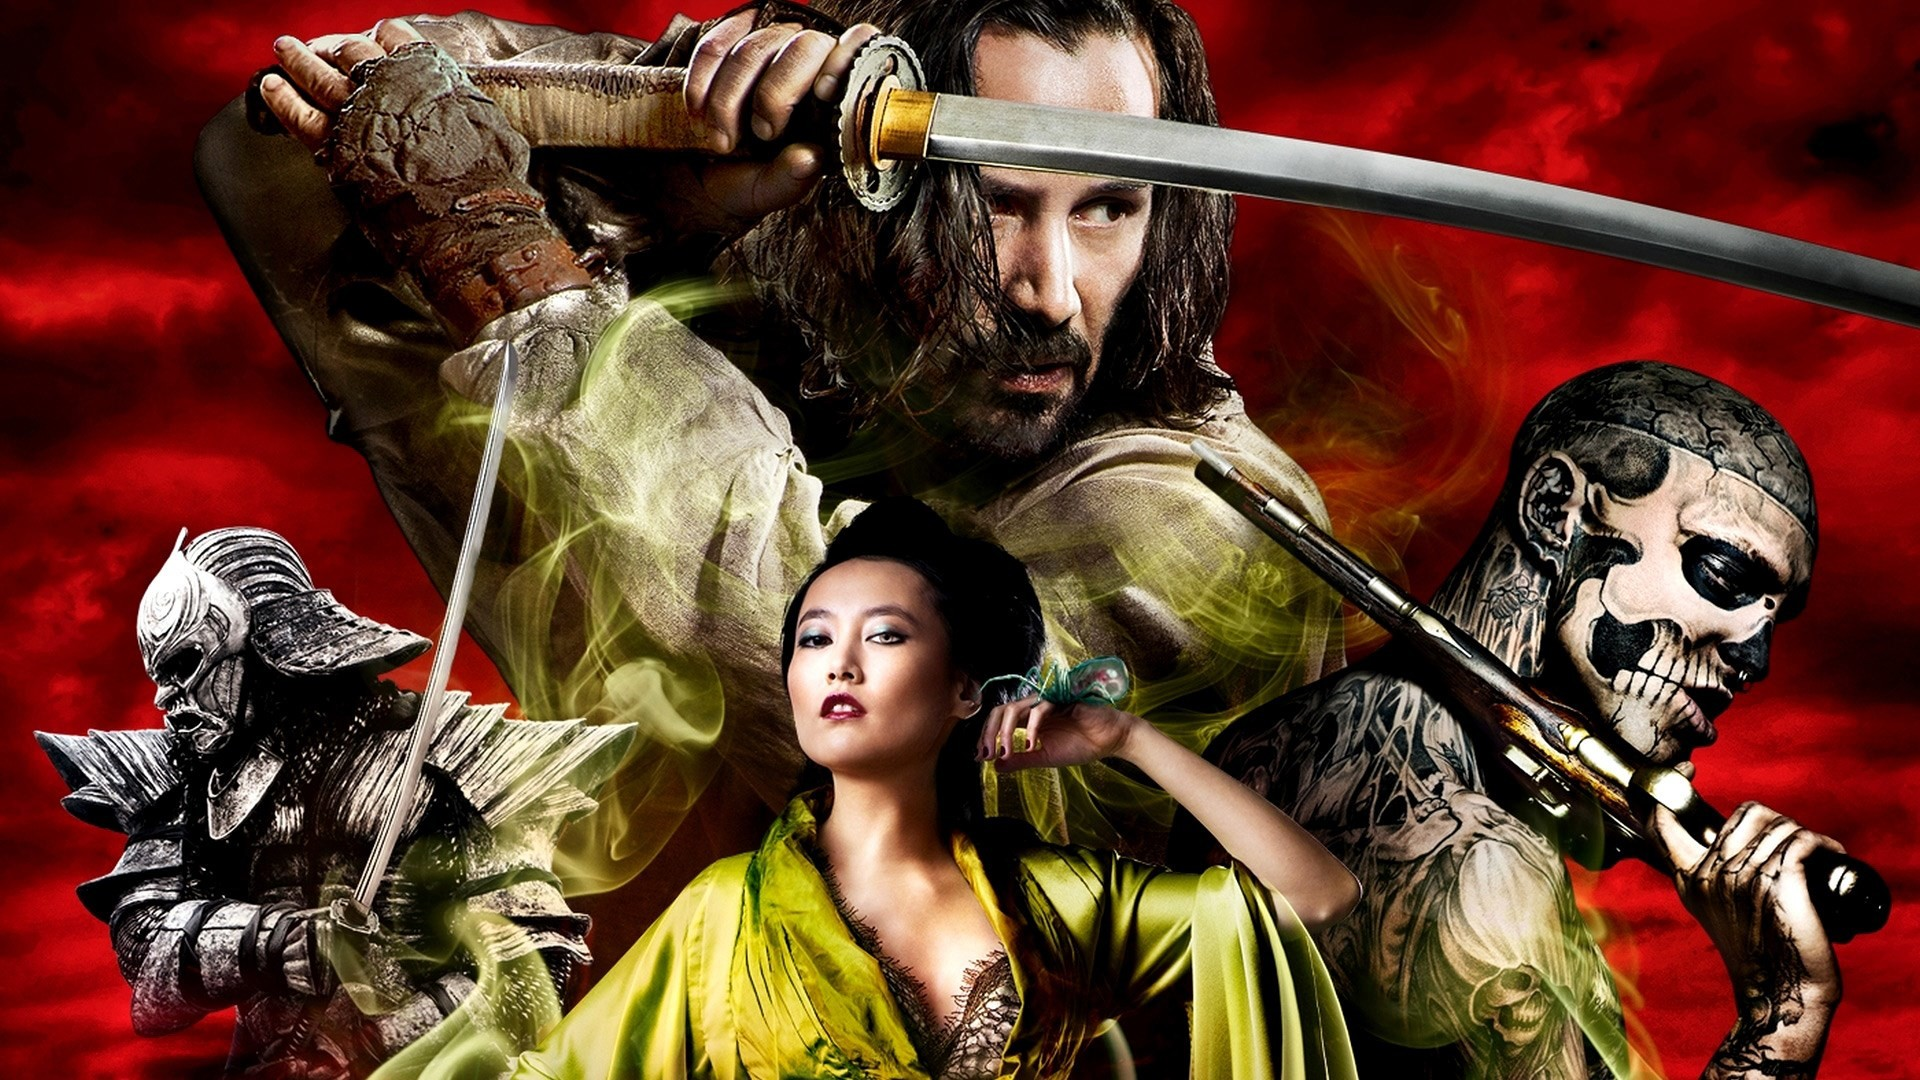 the bushidos customs and attitudes in the tale of the 47 ronin Genroku chûshingura / the 47 ronin dismissive attitude  mizoguchi might have intentionally signed on to the project to subvert the tale.